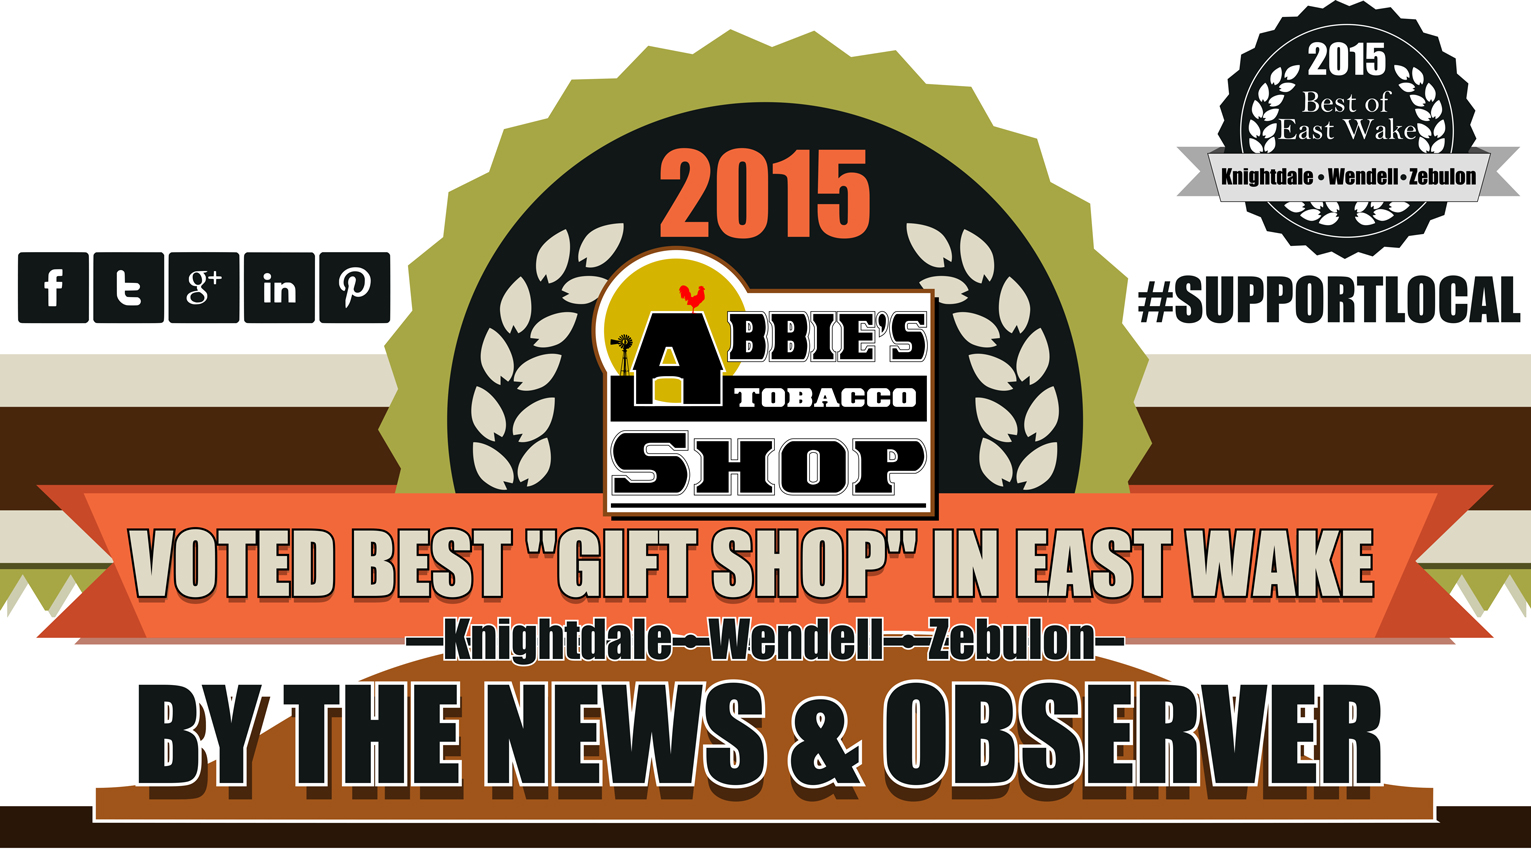 BEST-GIFT-SHOP-IN-EAST-WAKE_3